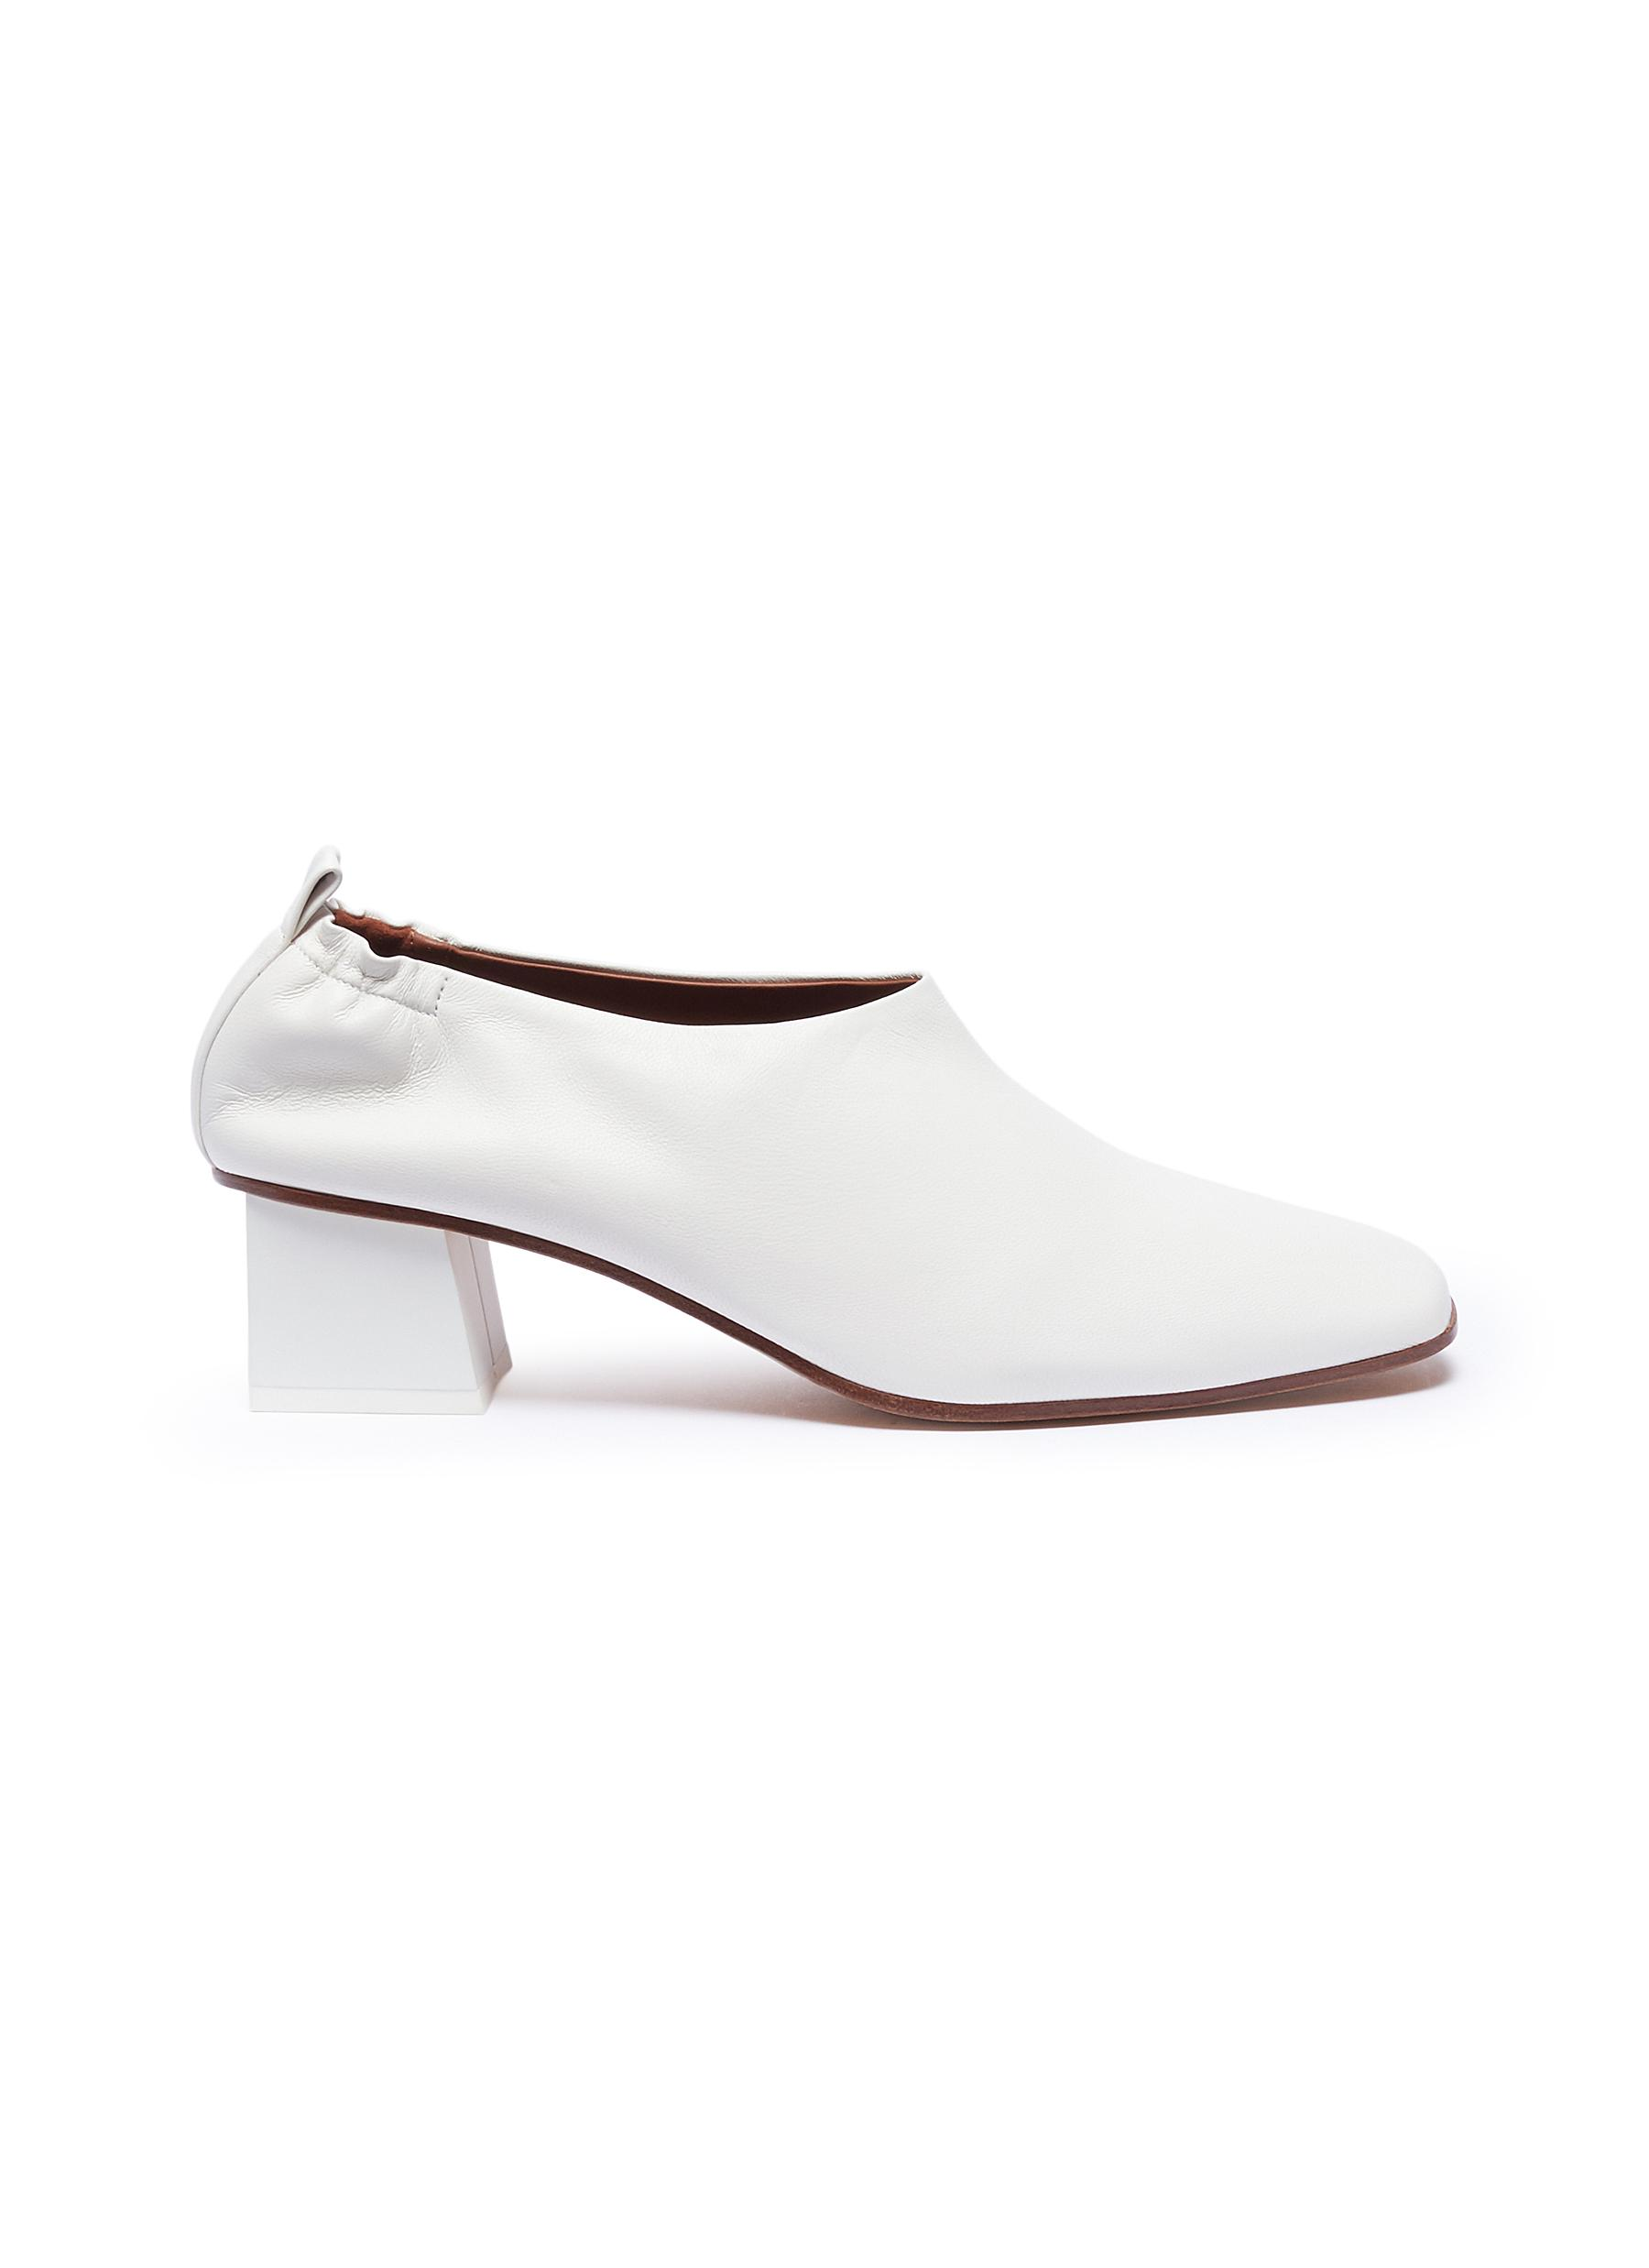 Micol Junior choked-up leather pumps by Gray Matters